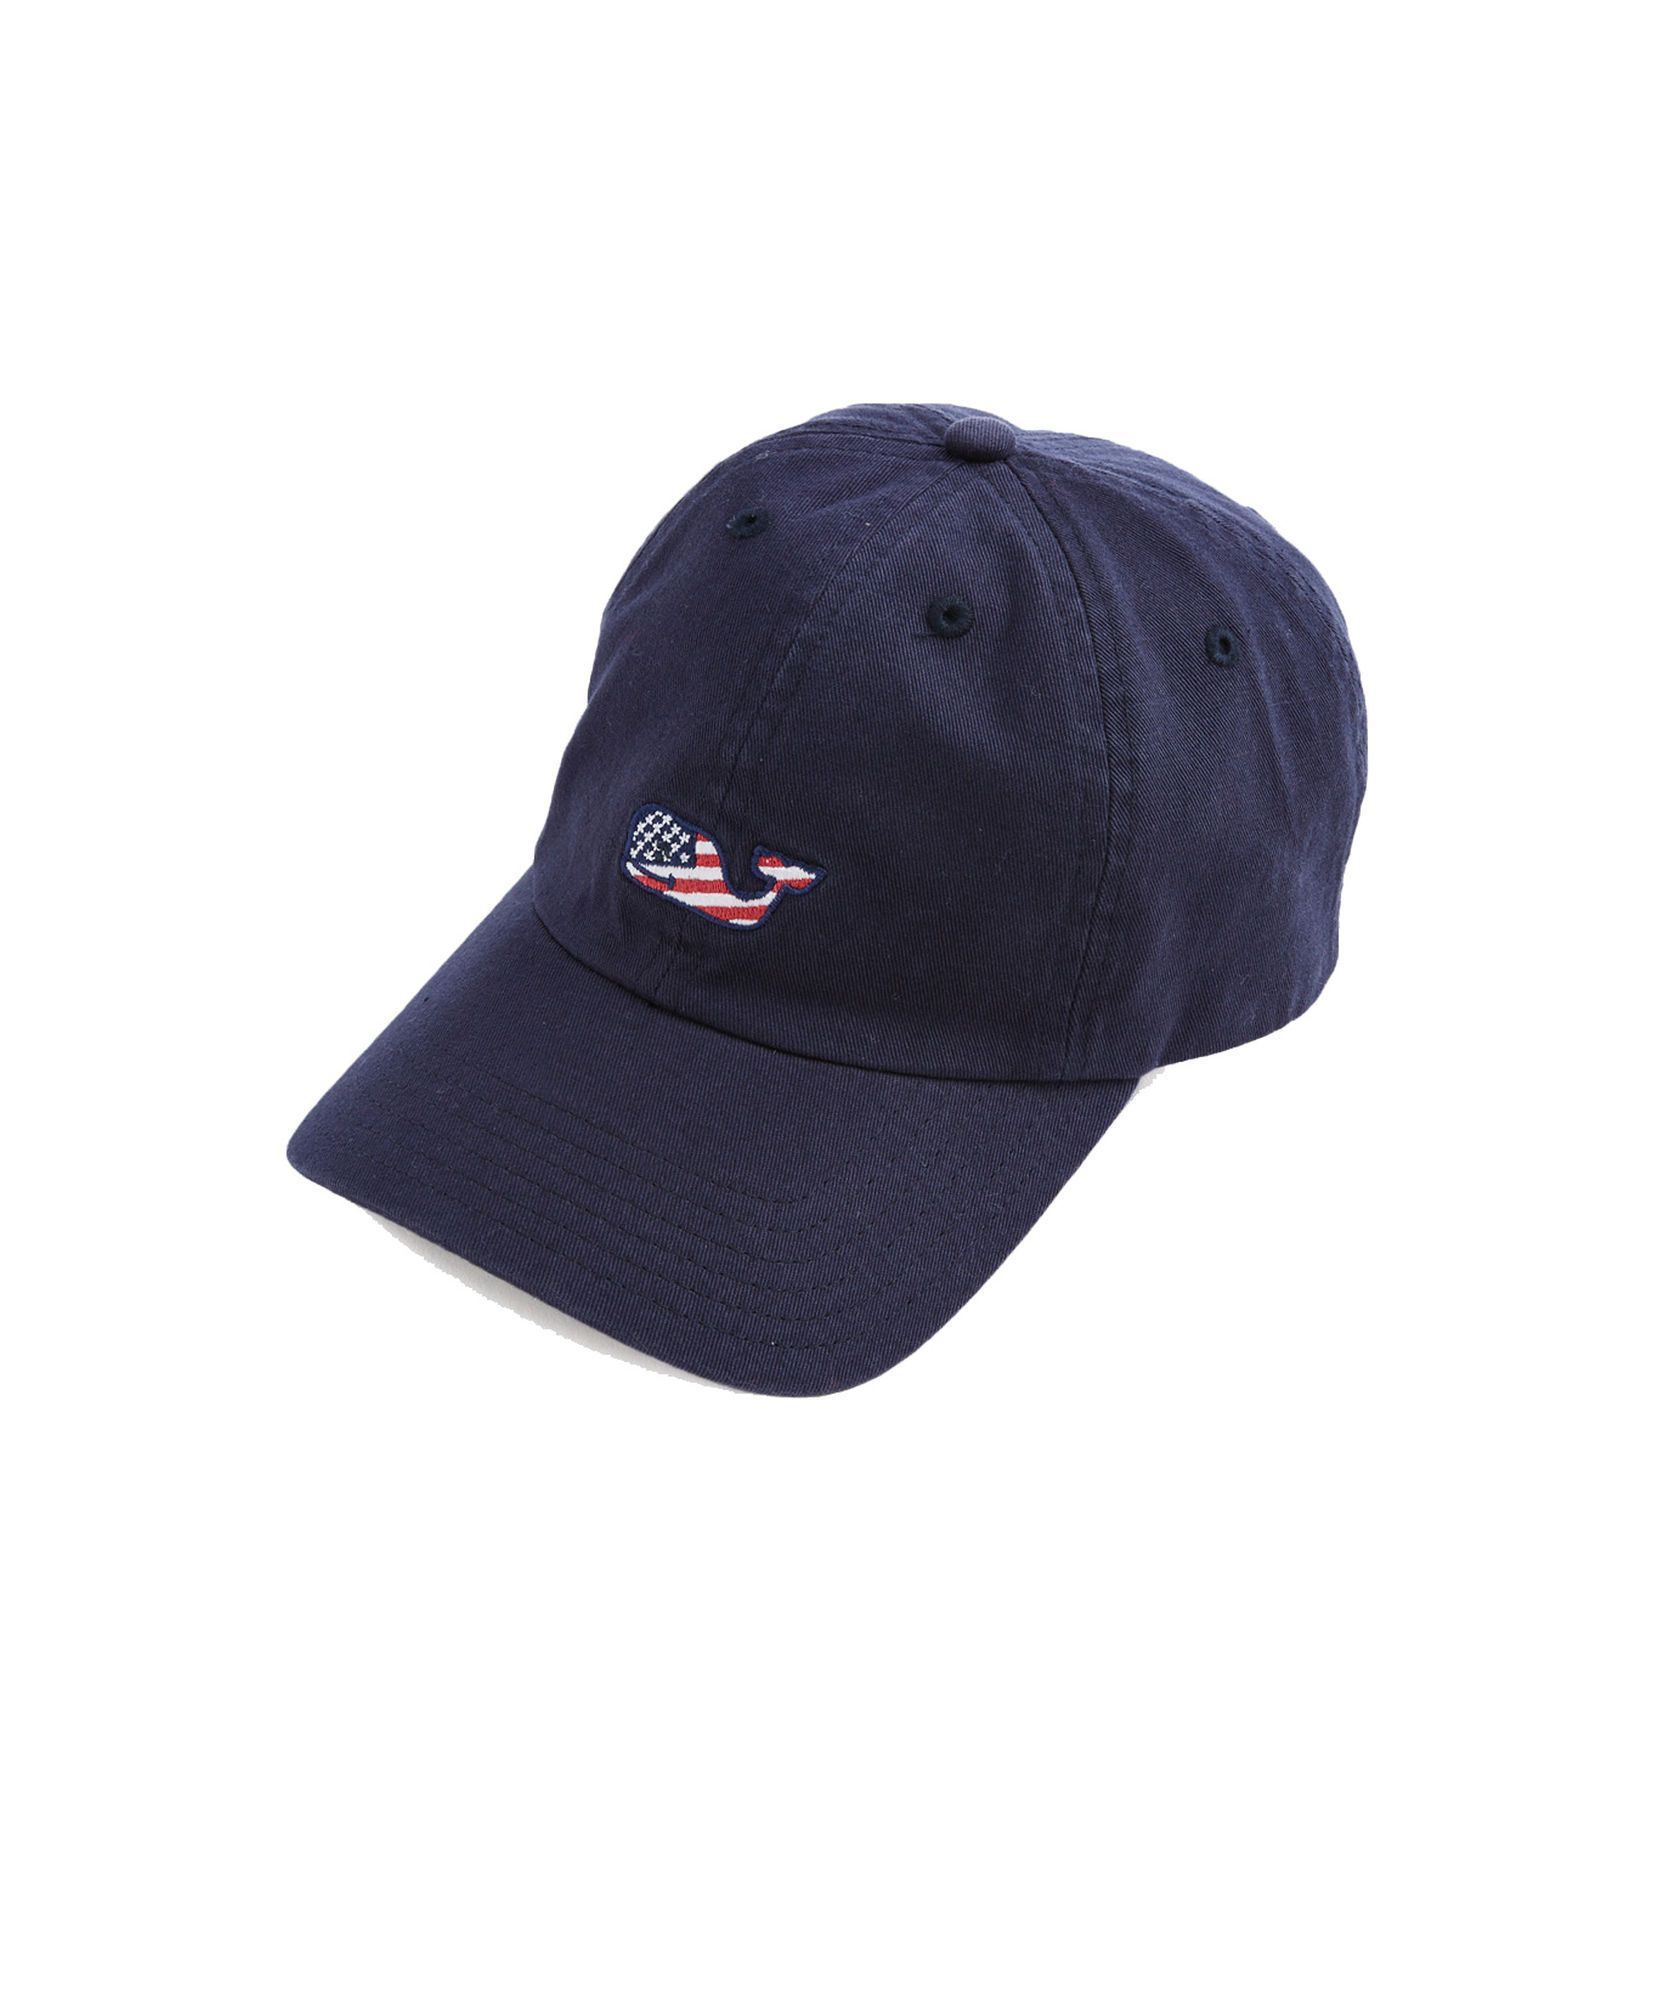 eaa286e78c6cd Whale Flag Baseball Hat. Whale Flag Baseball Hat Navy Hats